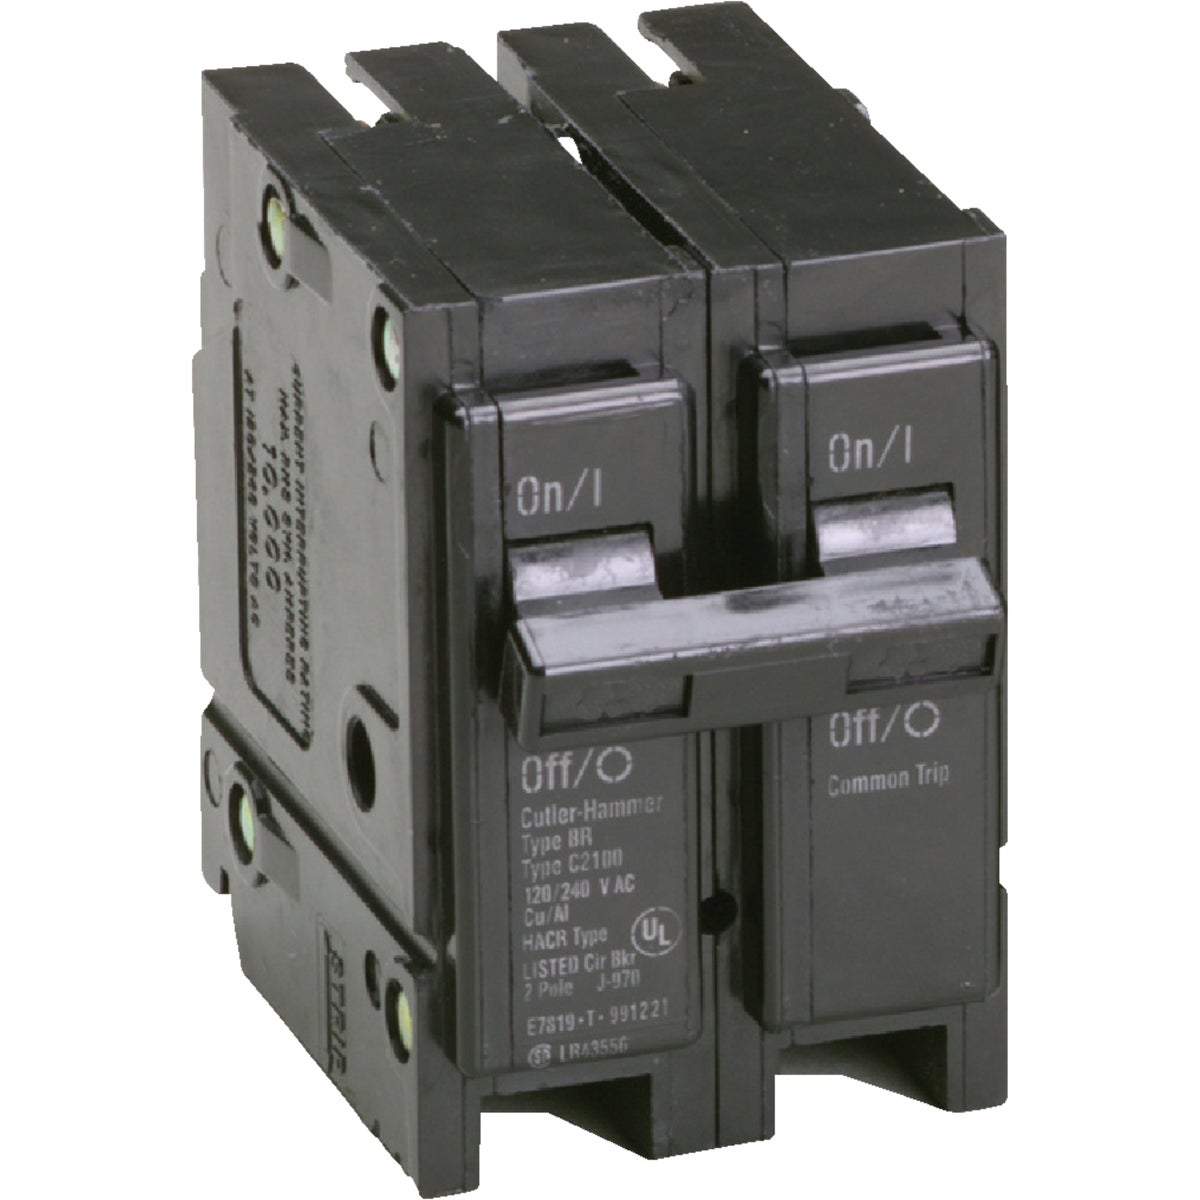 15A 2P CIRCUIT BREAKER - BR215 by Eaton Corporation